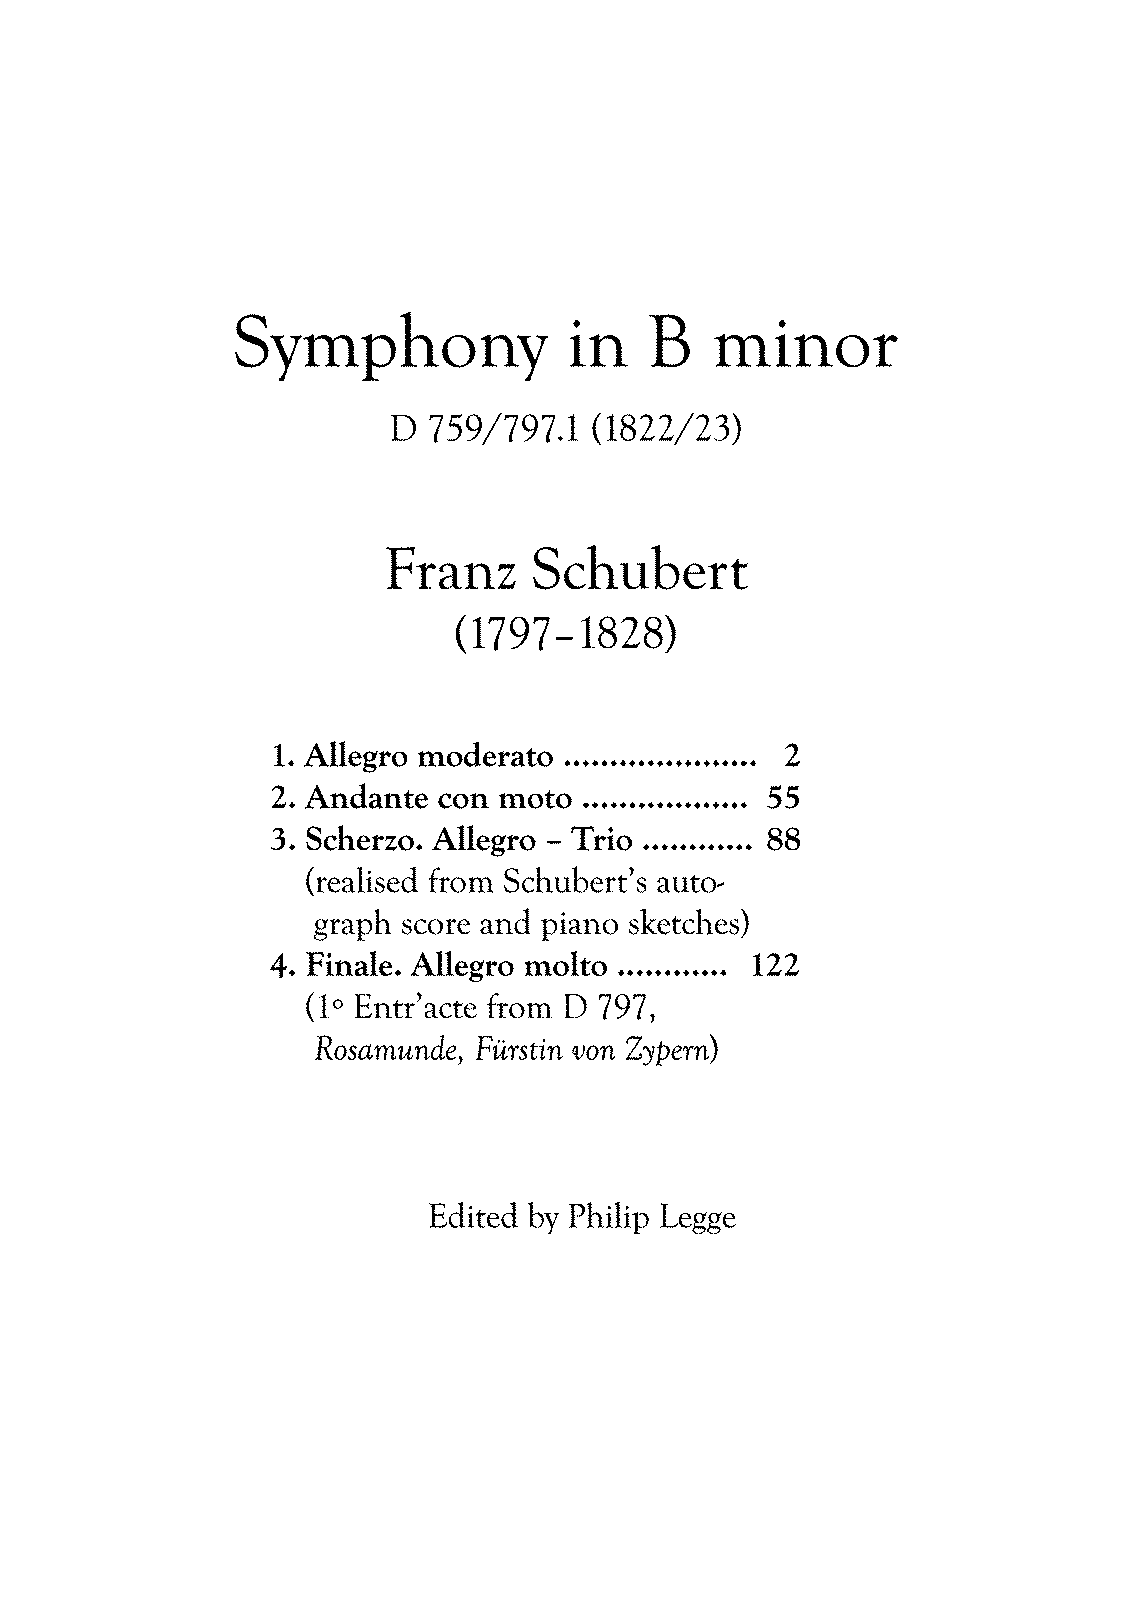 PMLP05477-D 759 Symphony in B minor.pdf